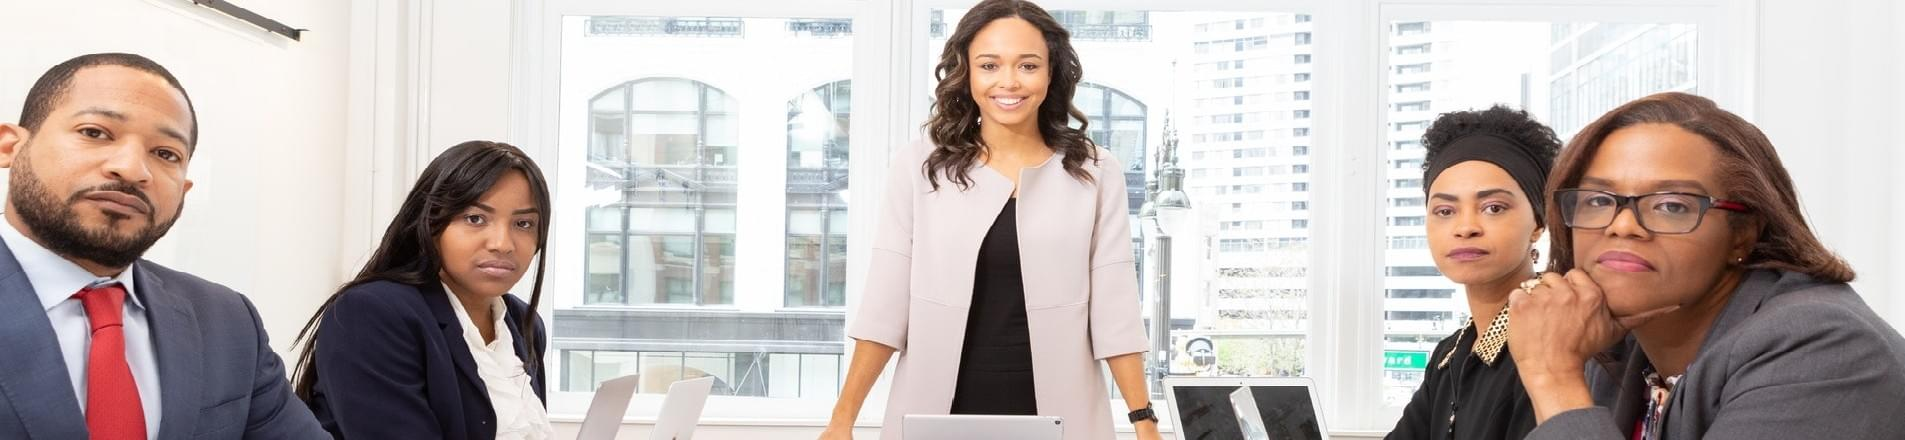 Fifth of working women think impractical to get superior job